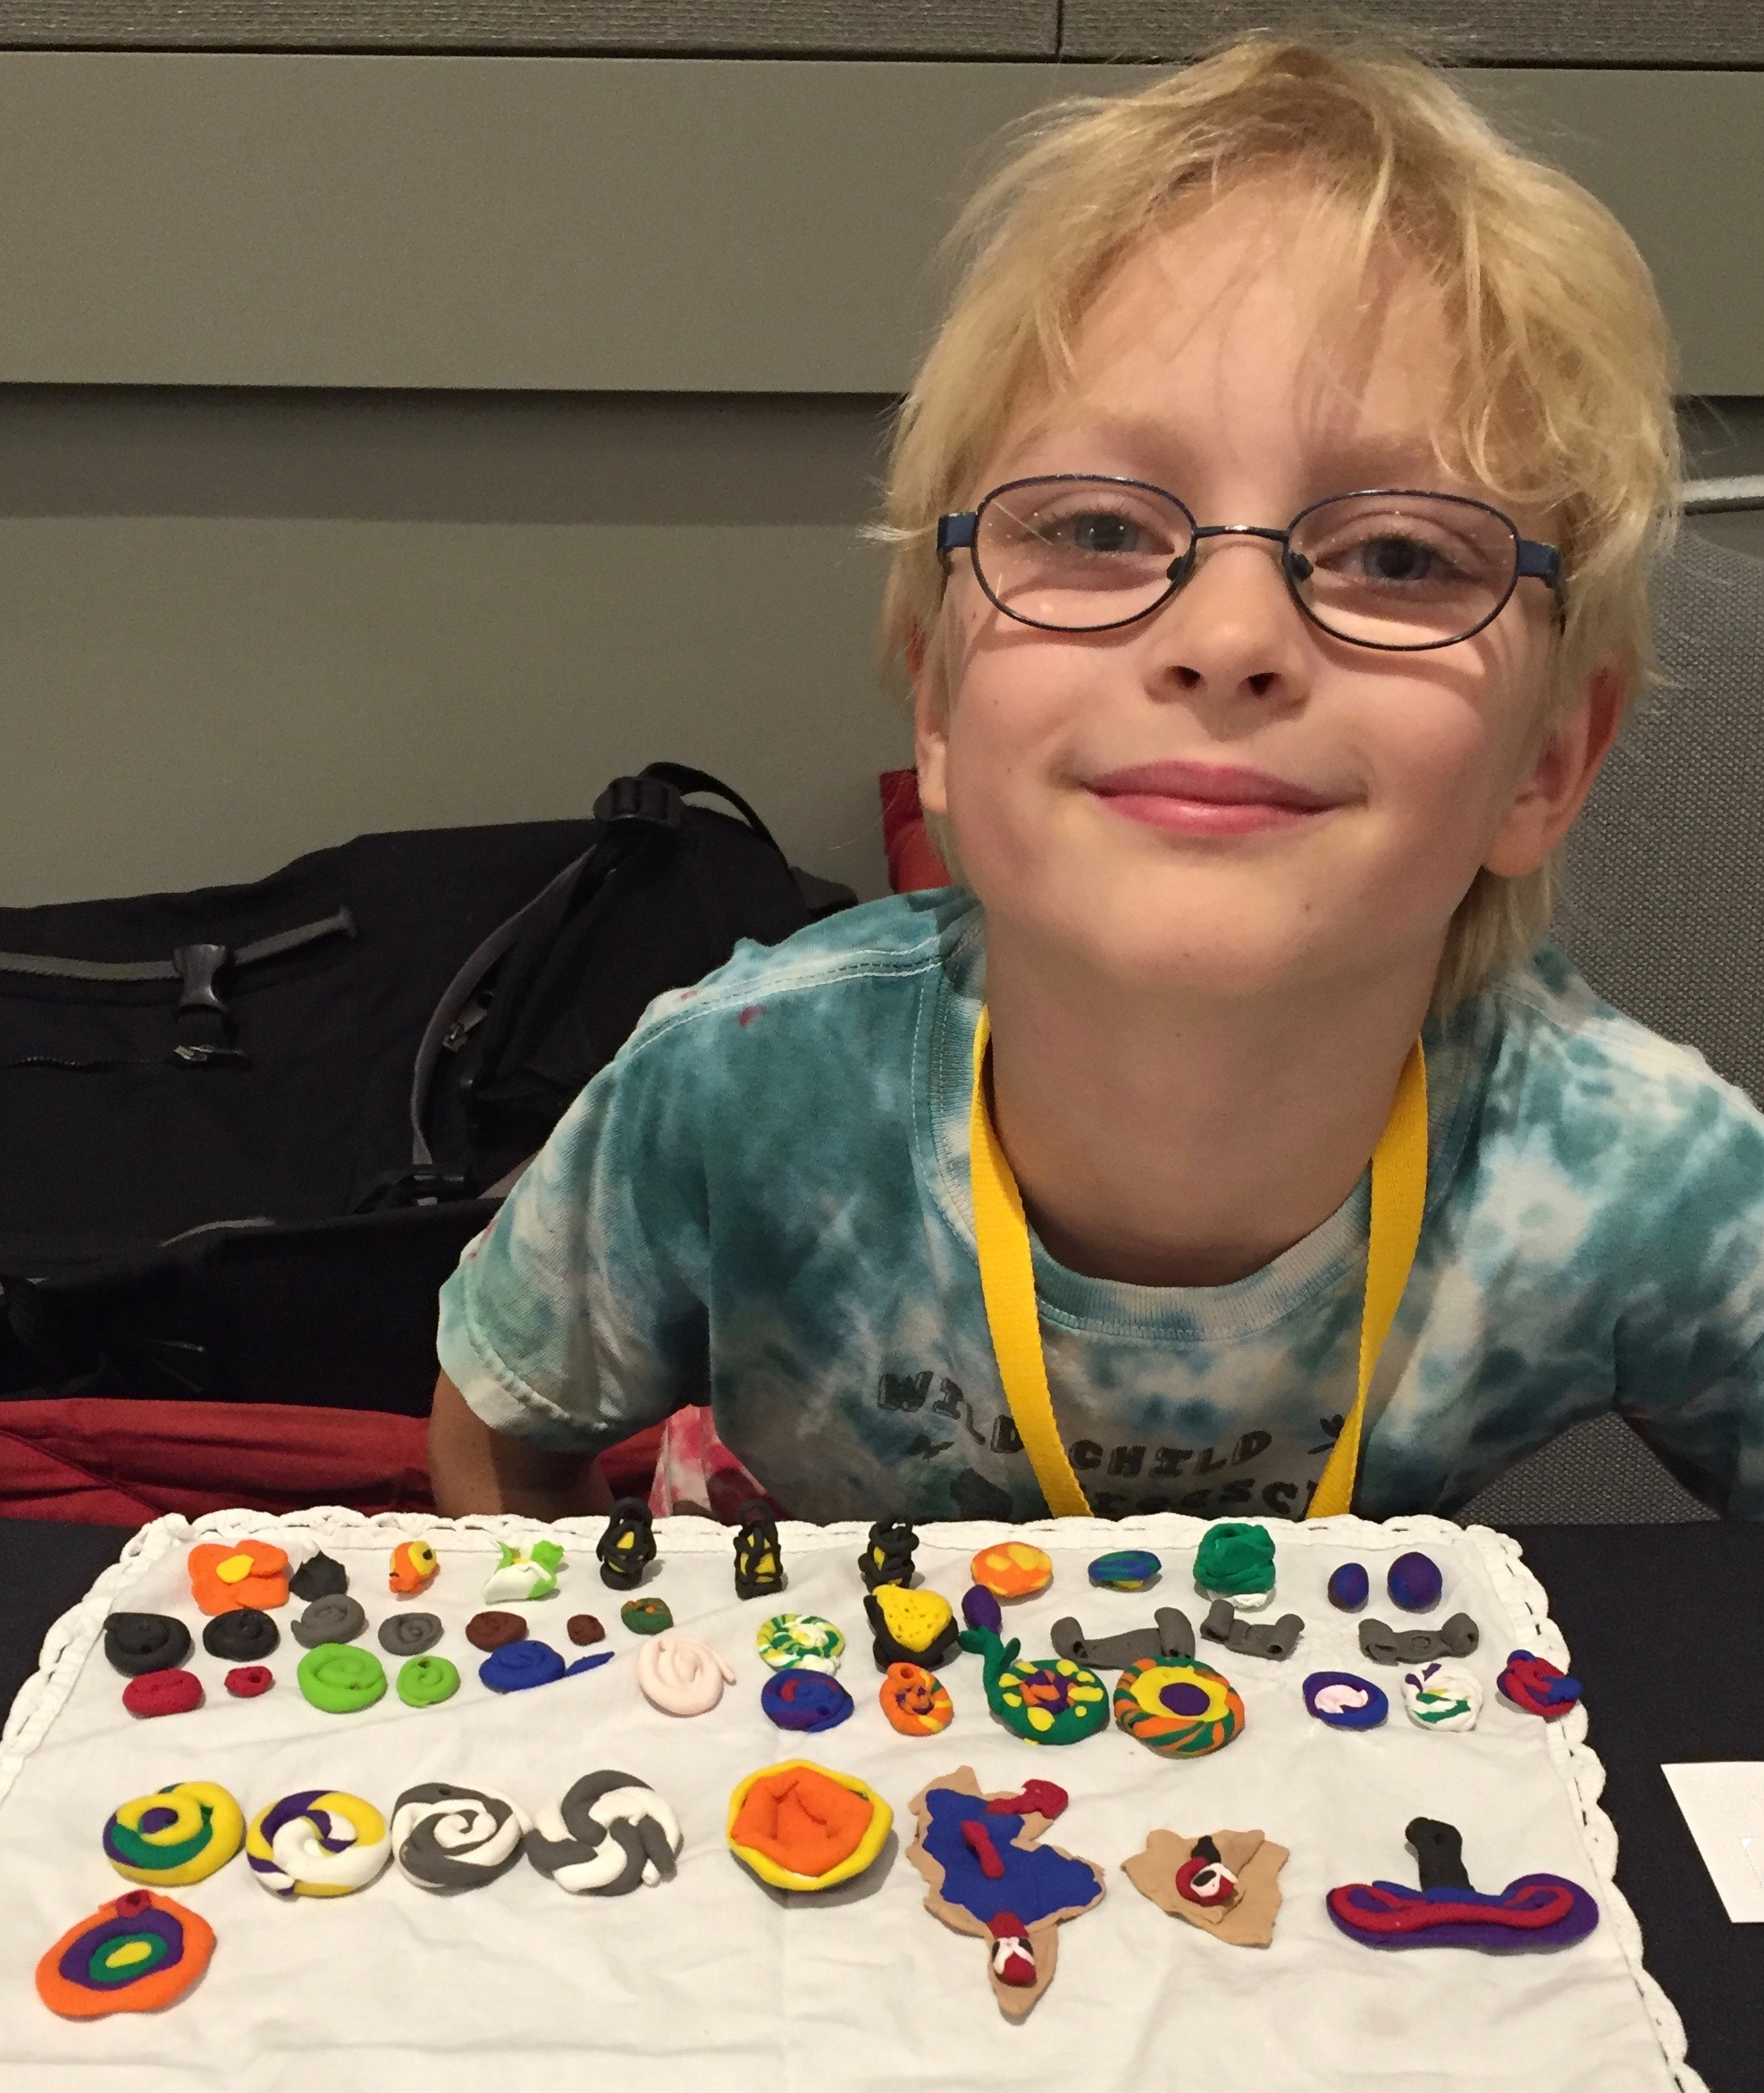 Boy selling his clay crafts at homeschool conference.